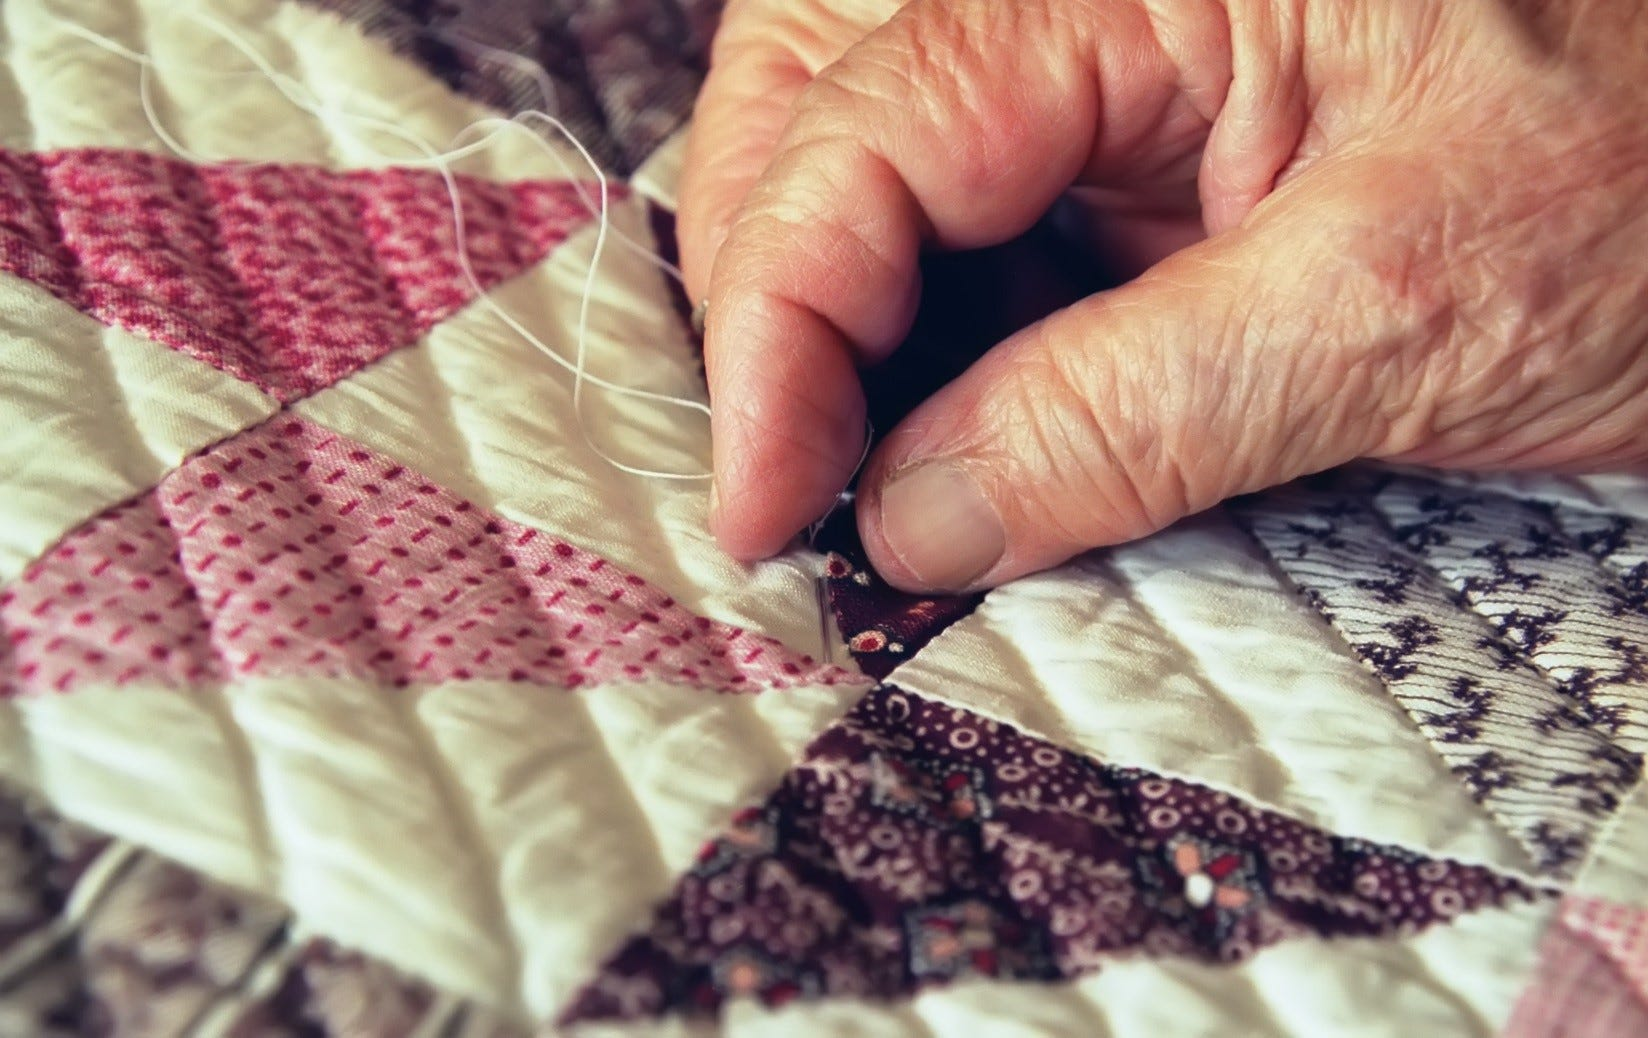 Sewing a quilt